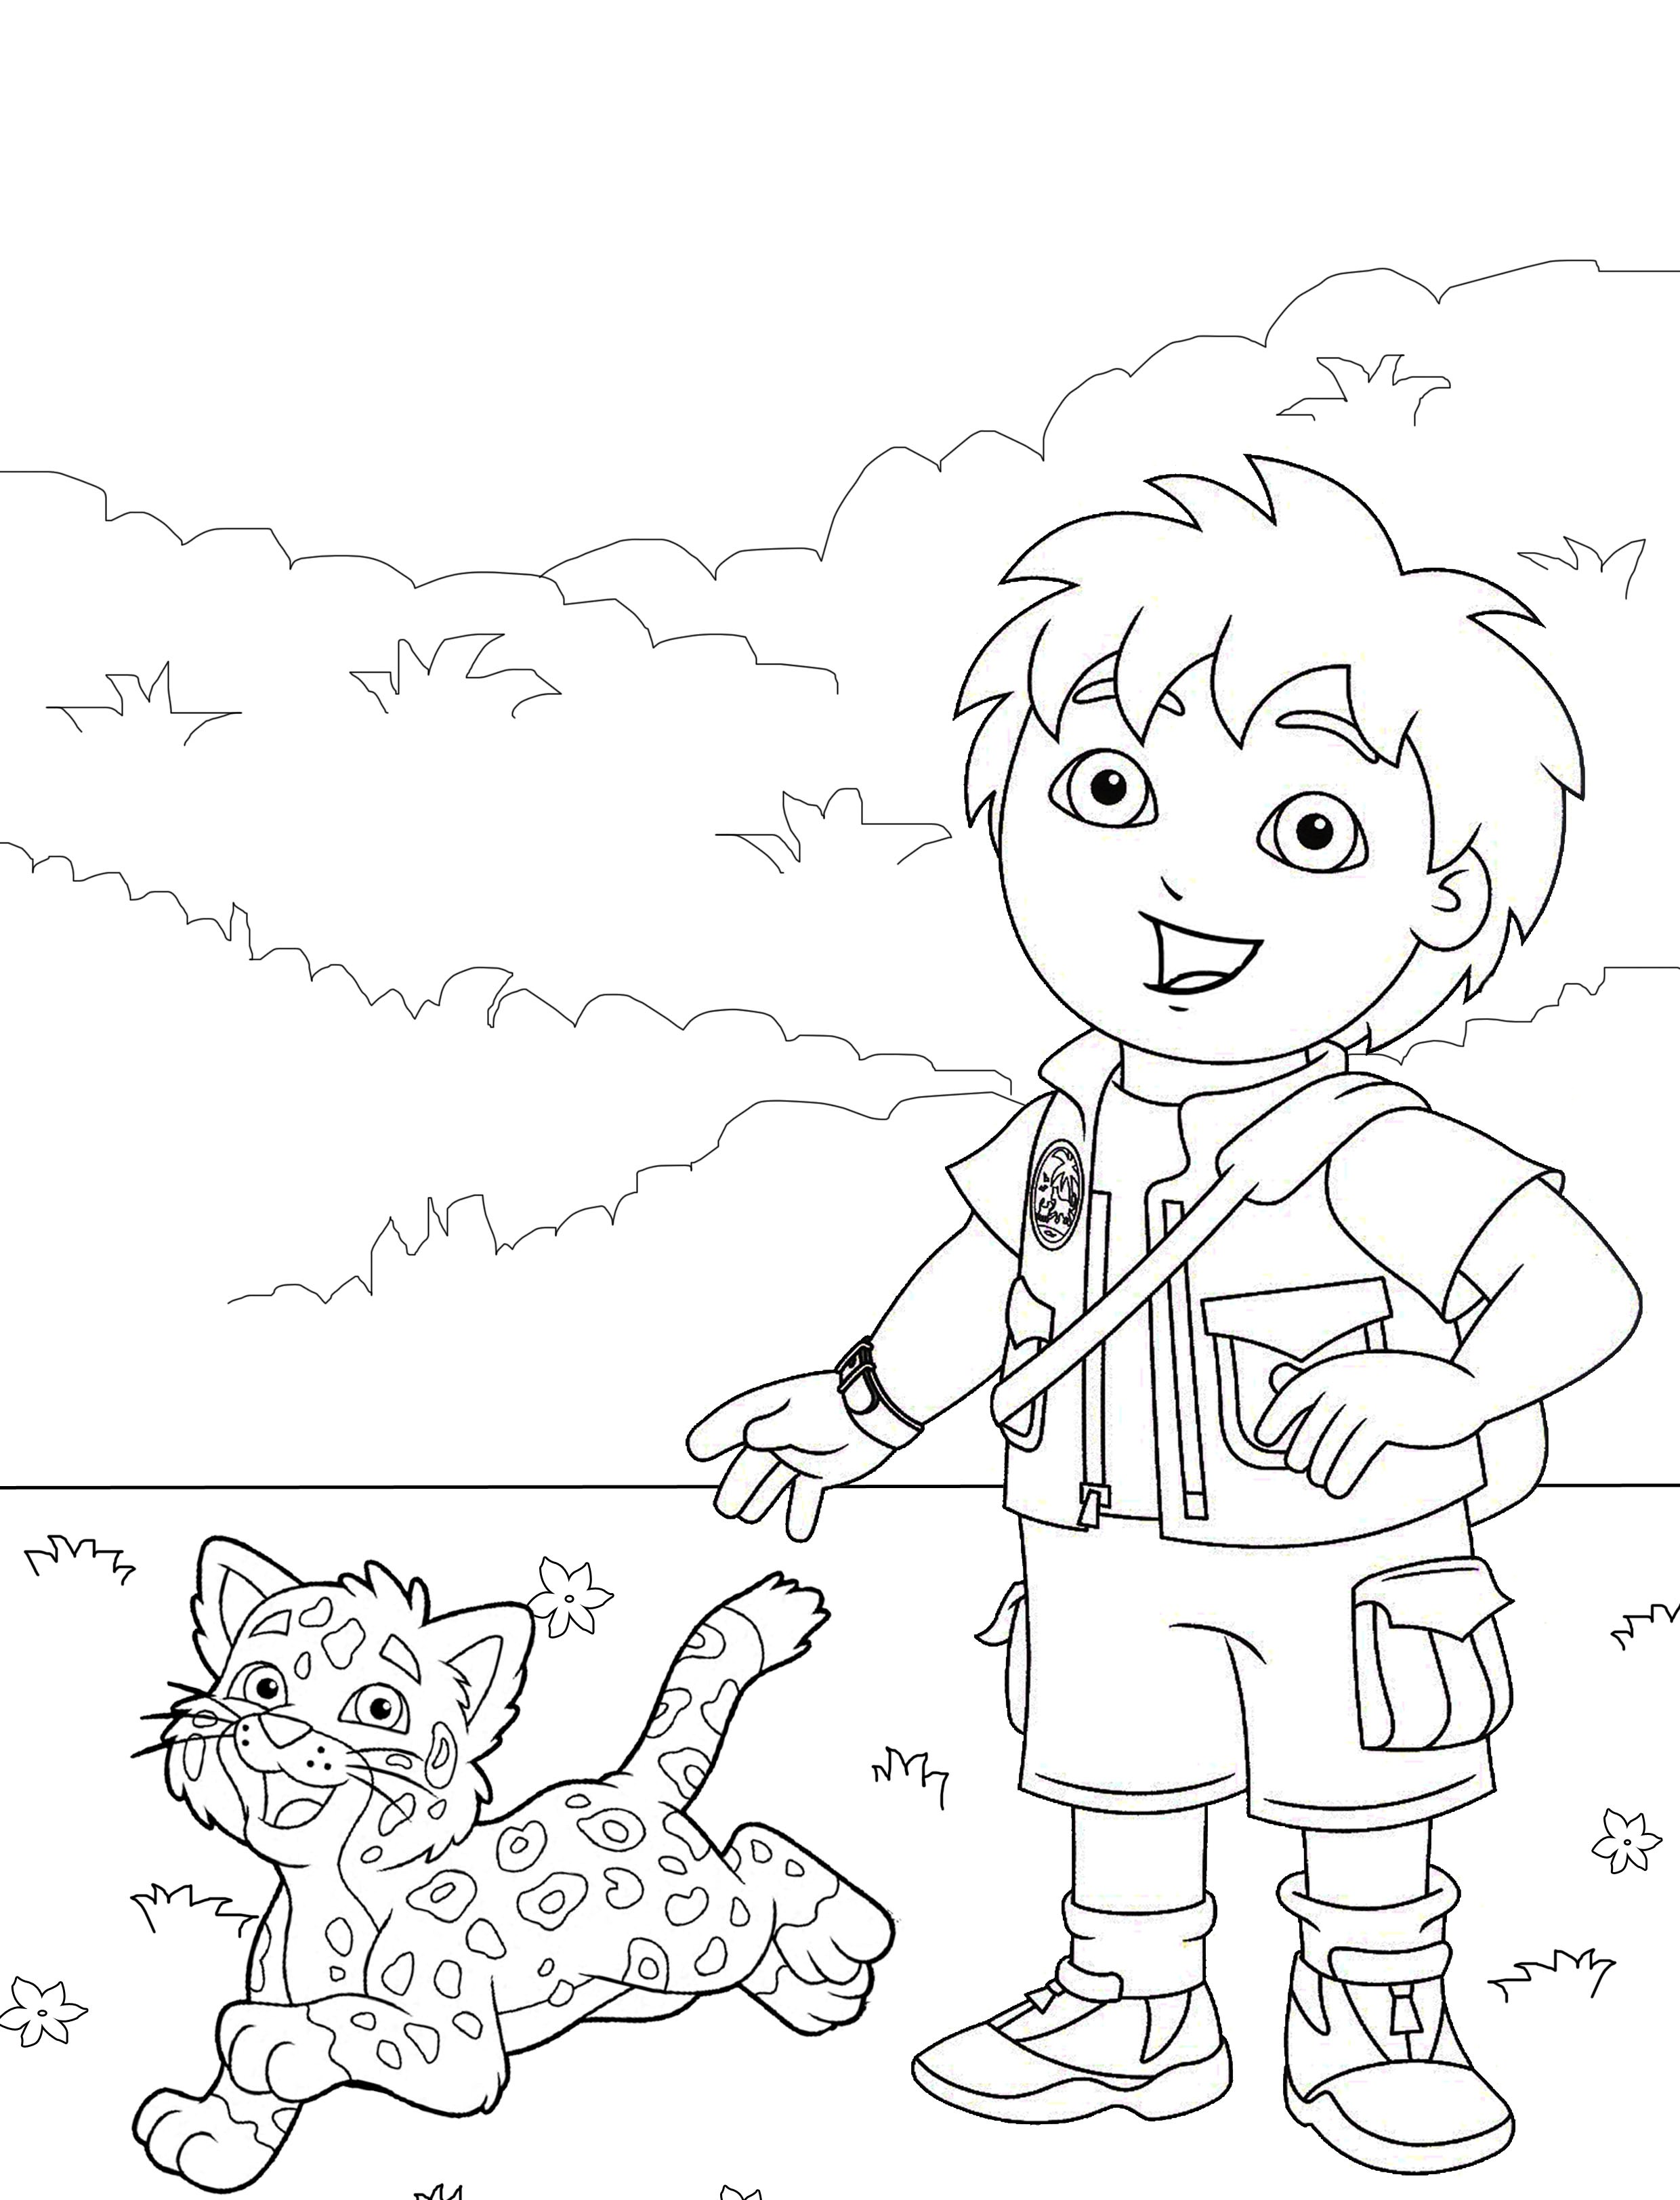 Printable Diego Coloring Pages Coloring Me Diego Coloring Pages